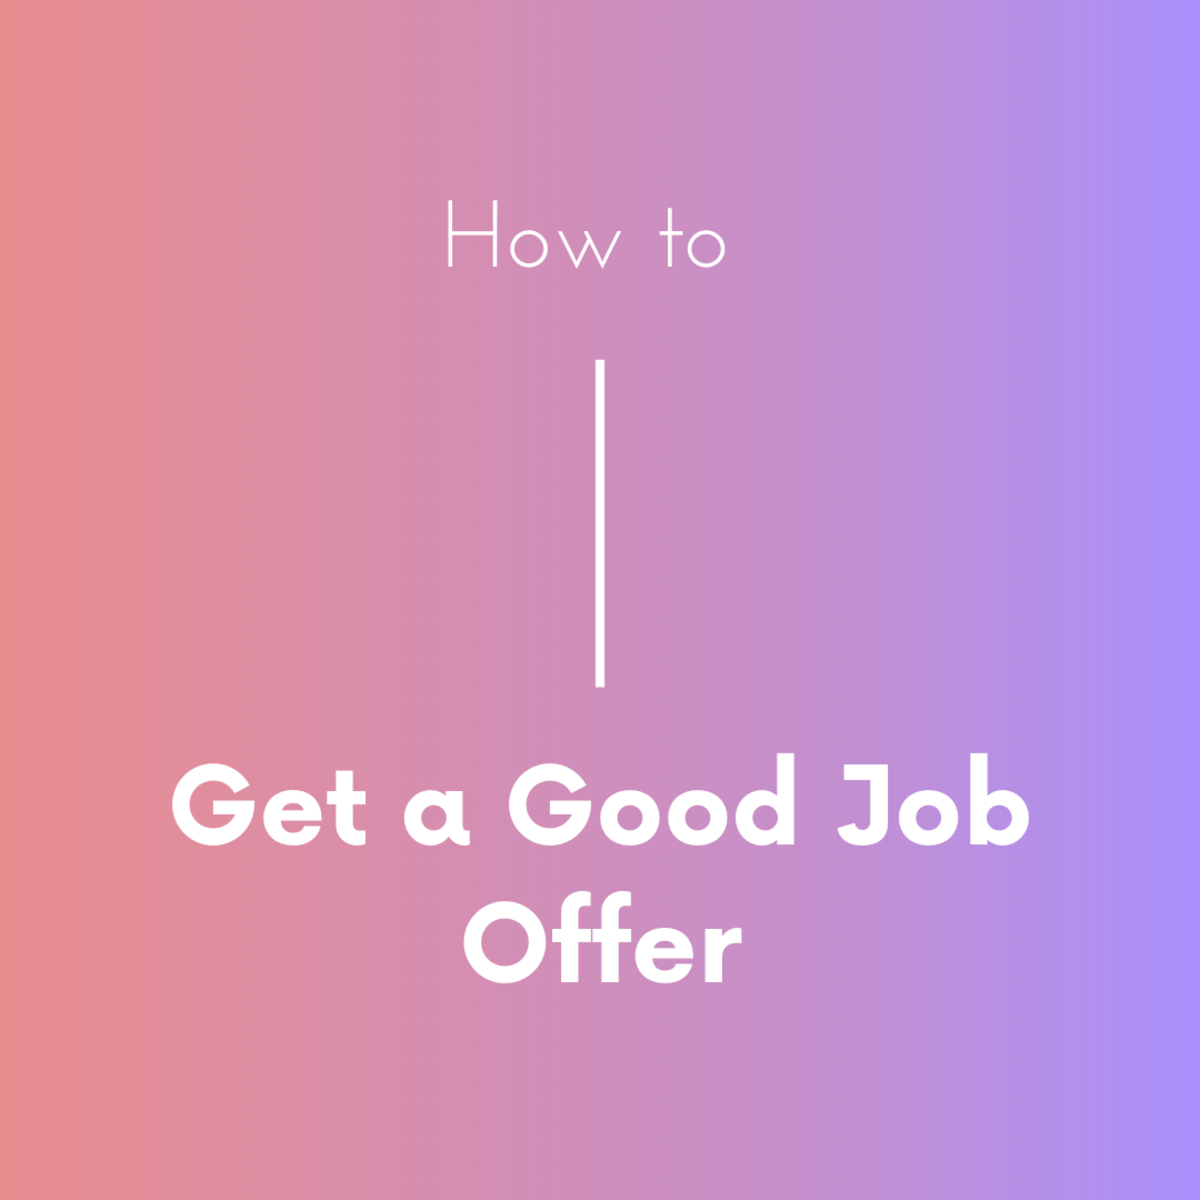 Follow these tips to better your chances of getting that job offer!